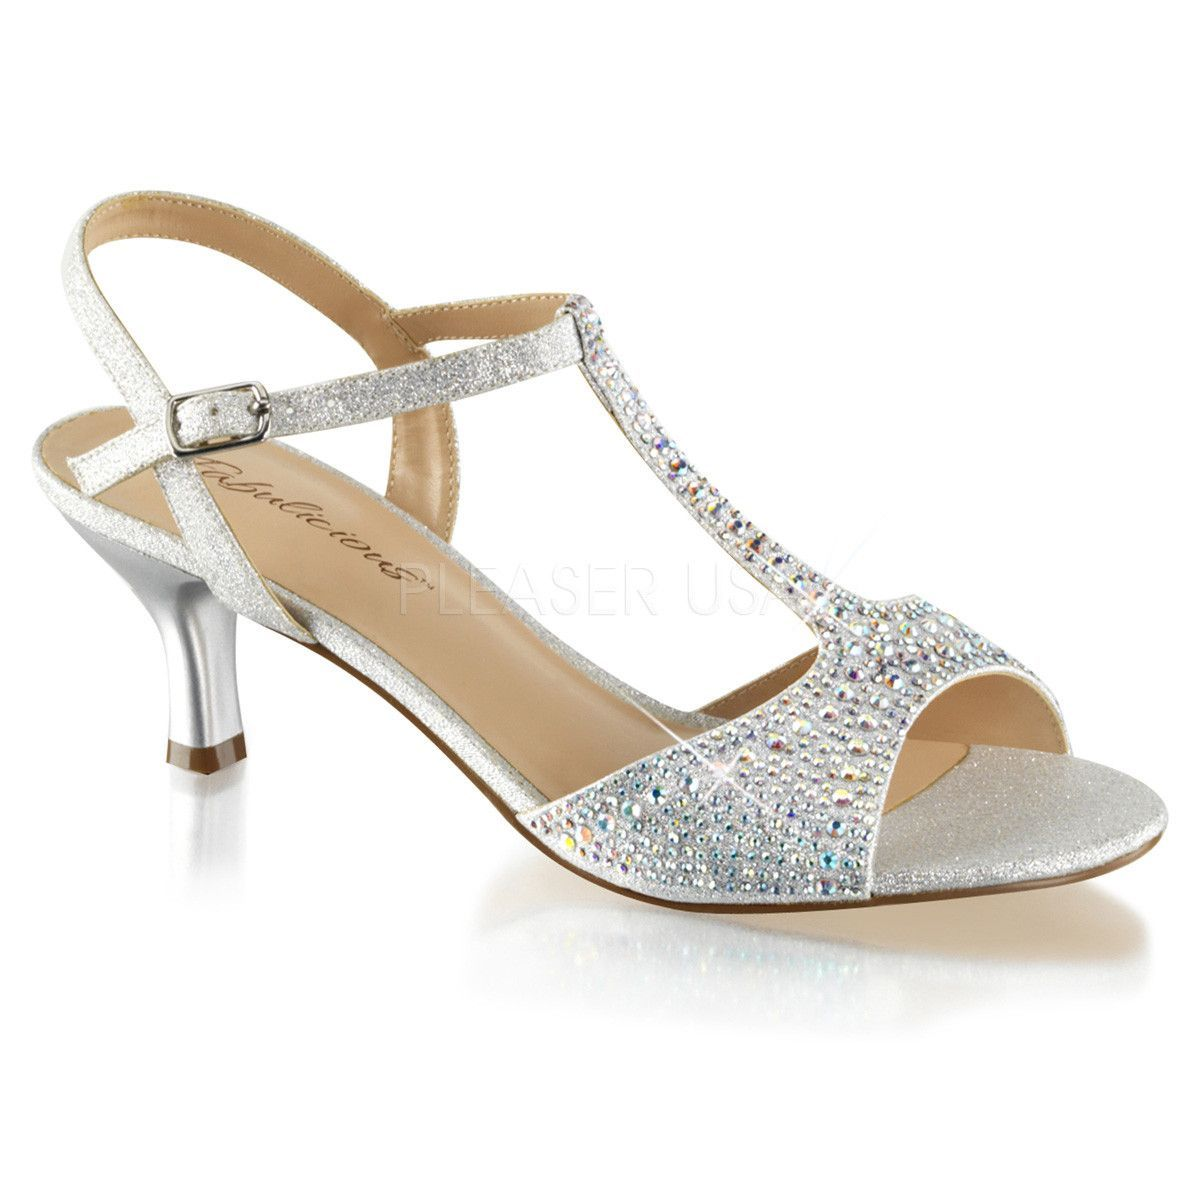 Wedding Dsw Wedding Shoes gold shoe for pippis wedding unlisted kind gal sandal 39 95 2 12 kitten heel t strap sandals embellished with silver multi rhinestones